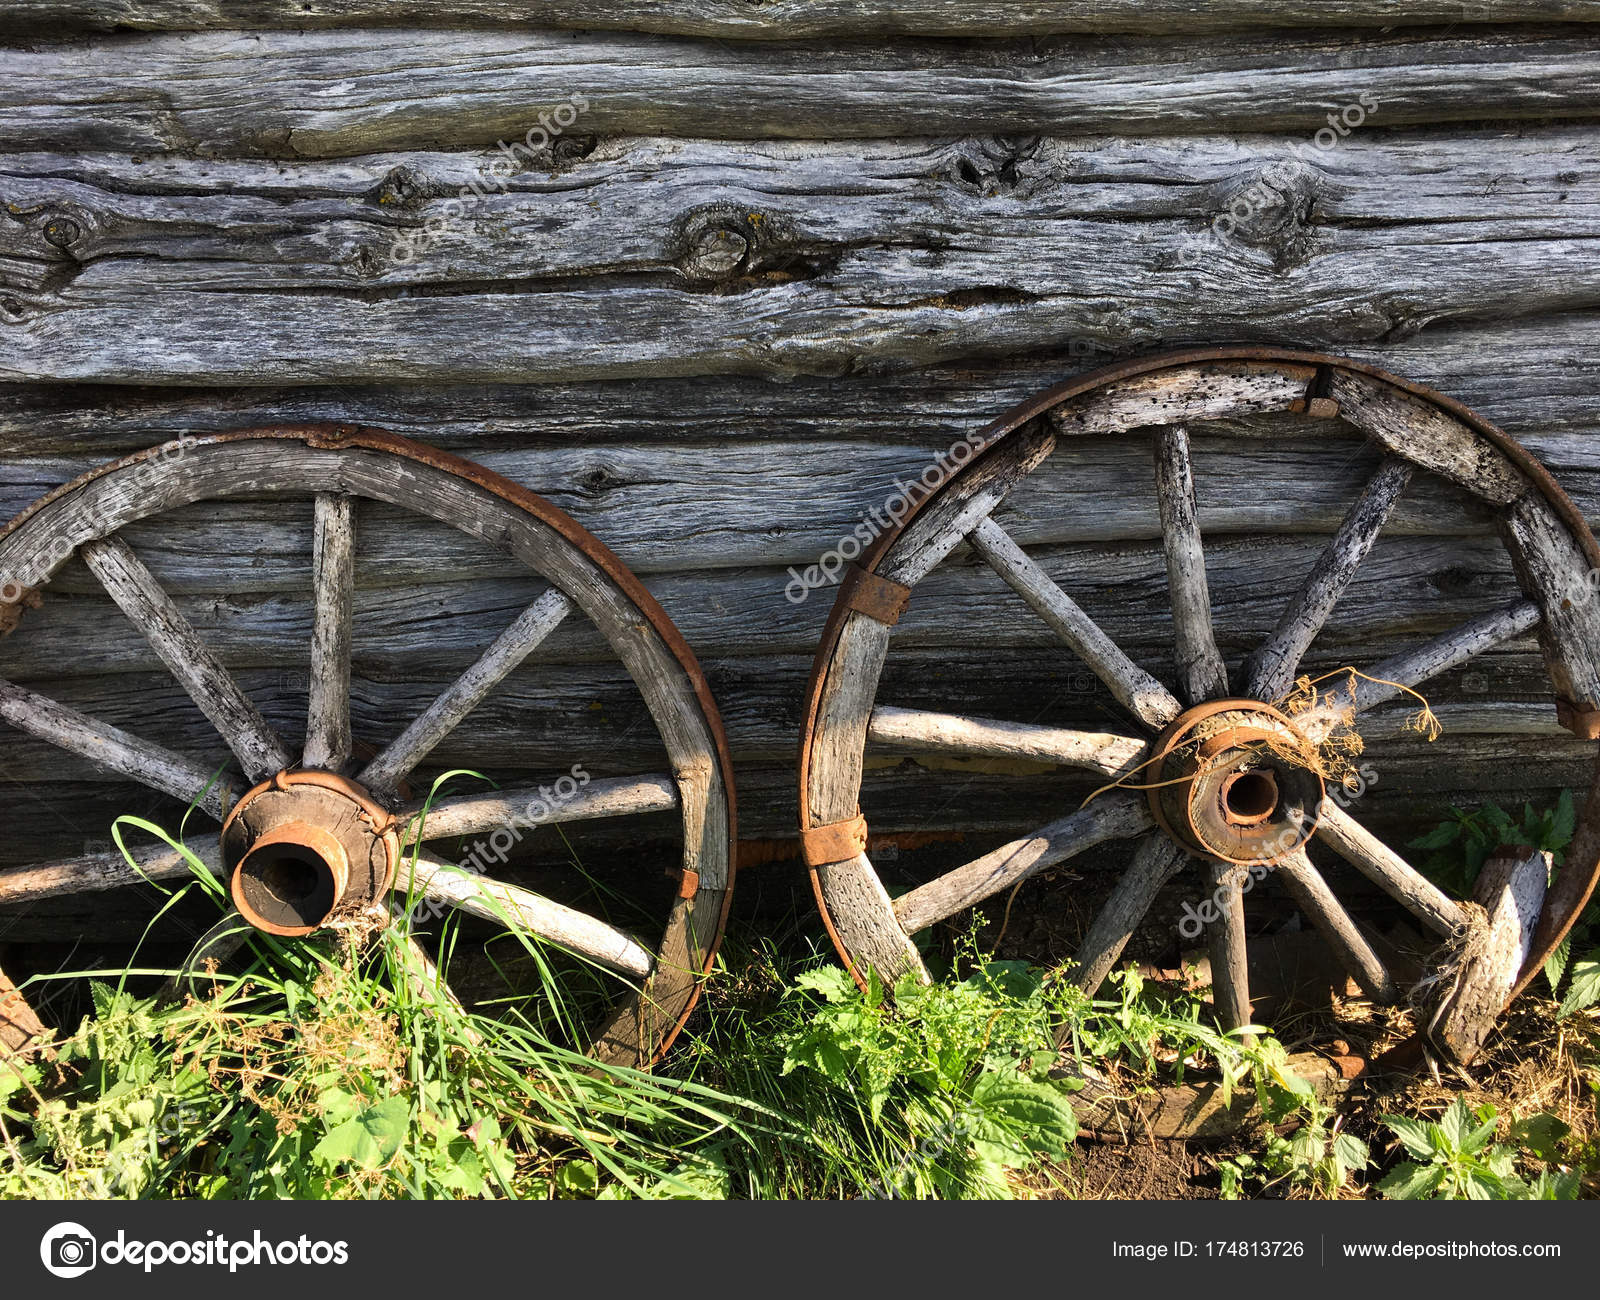 depositphotos stock photo old wooden wheels from a